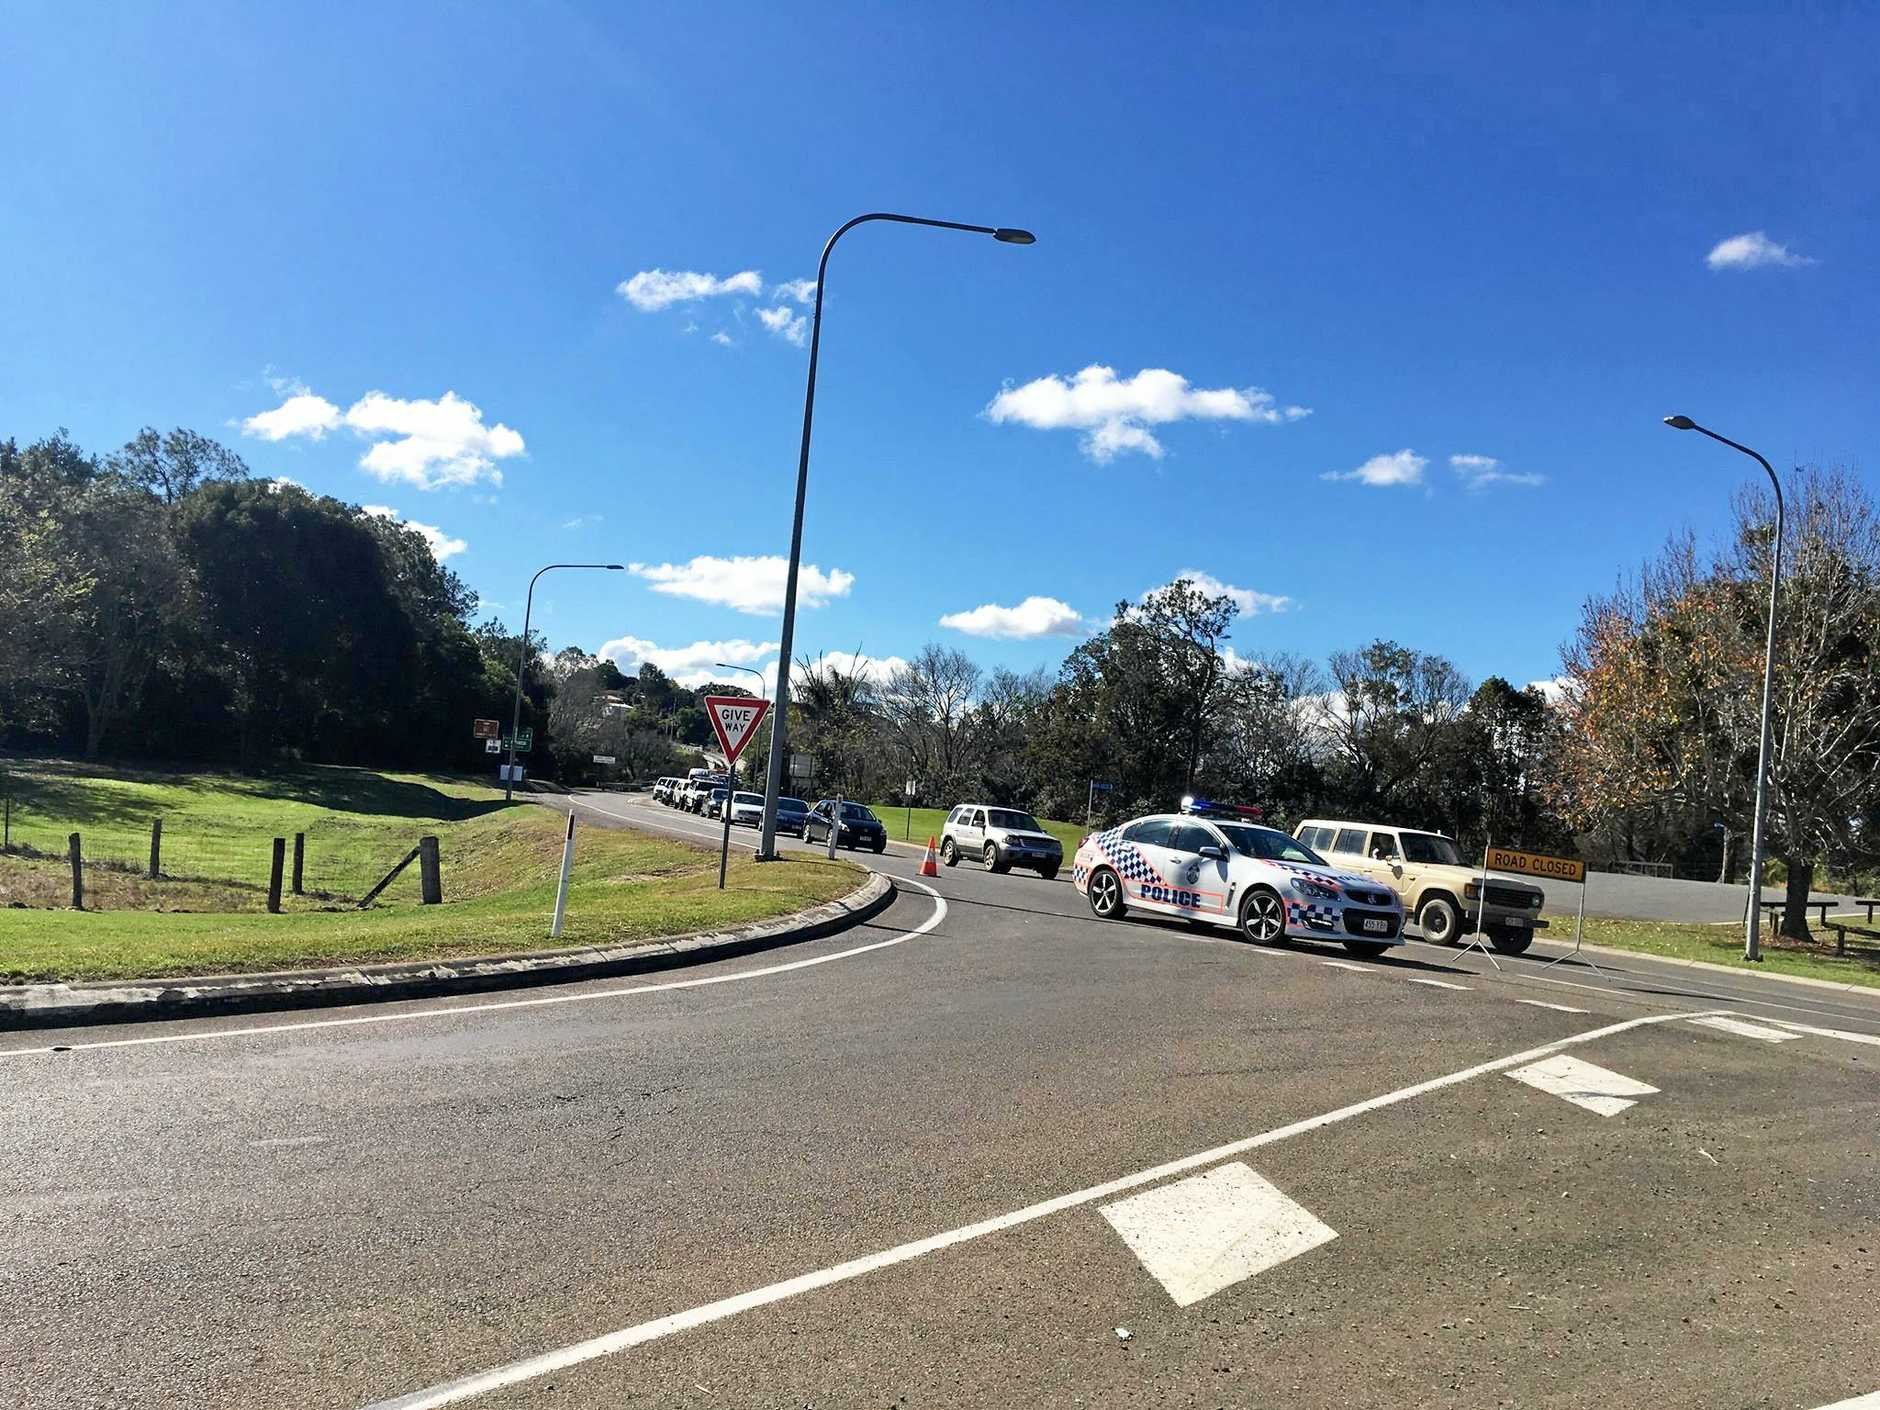 Traffic chaos on the Bruce Highway and Normanby Bridge continues.